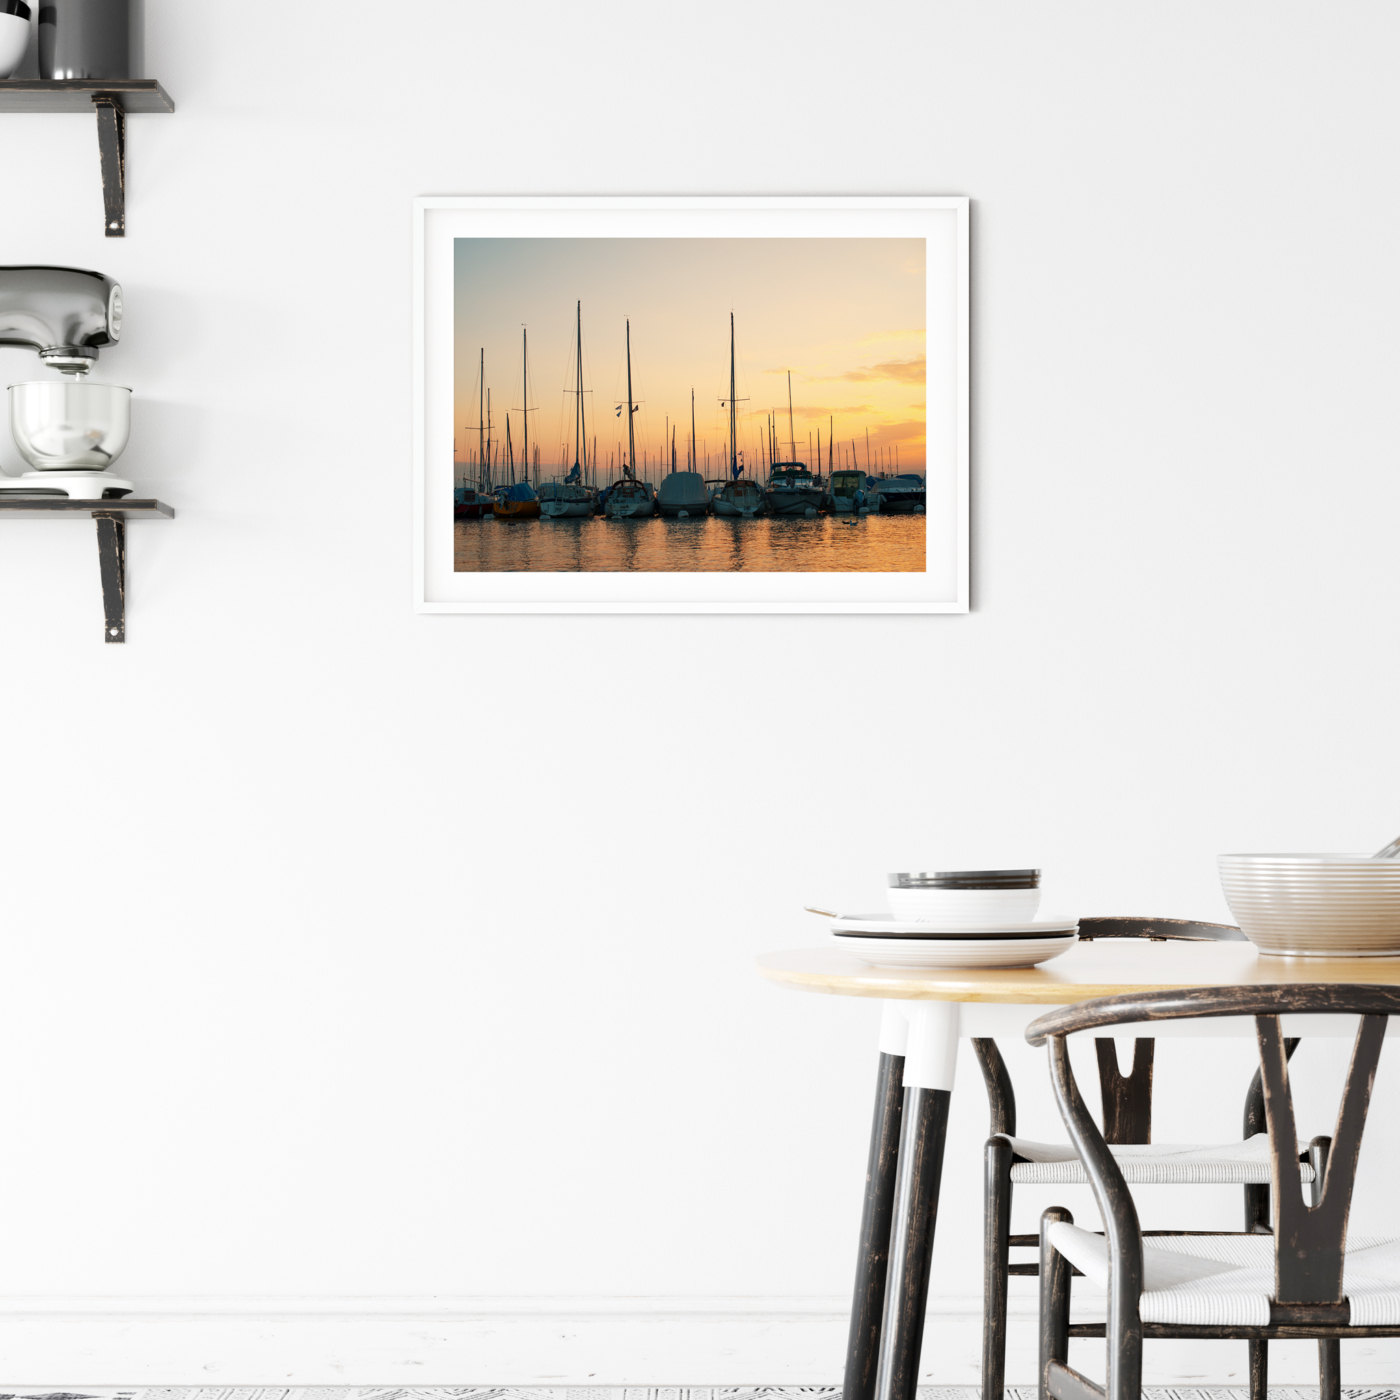 Sunset in Lausanne photography - color print with border in the white frame on the wall